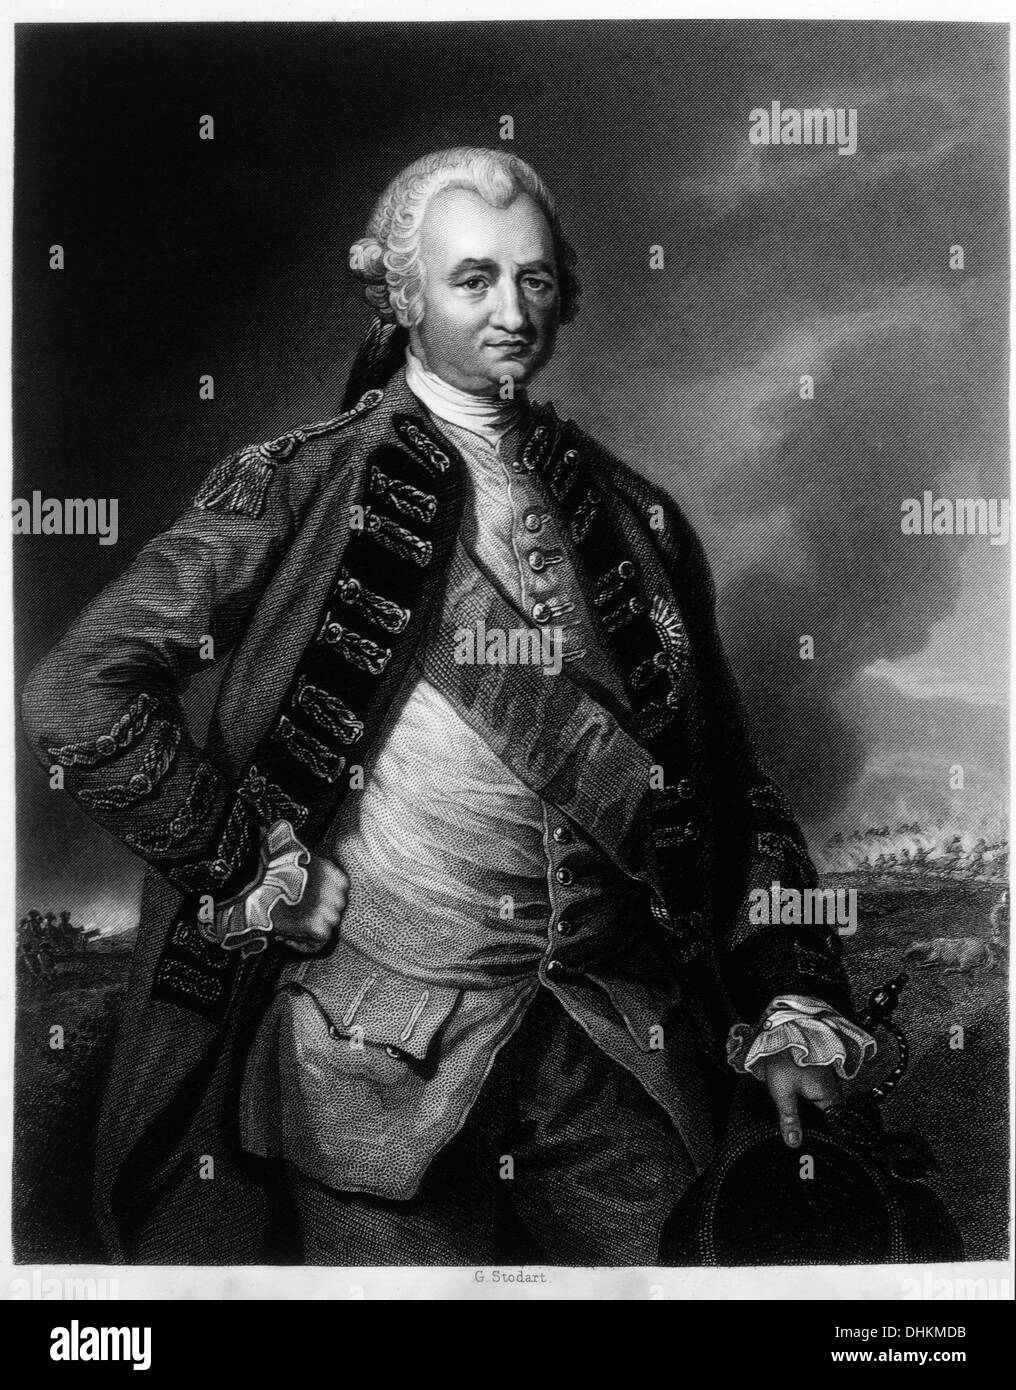 Robert Clive, 1st Baron Clive of Plassey (1725-1774), Soldier and First British Administrator of Bengal, Engraving, - Stock Image